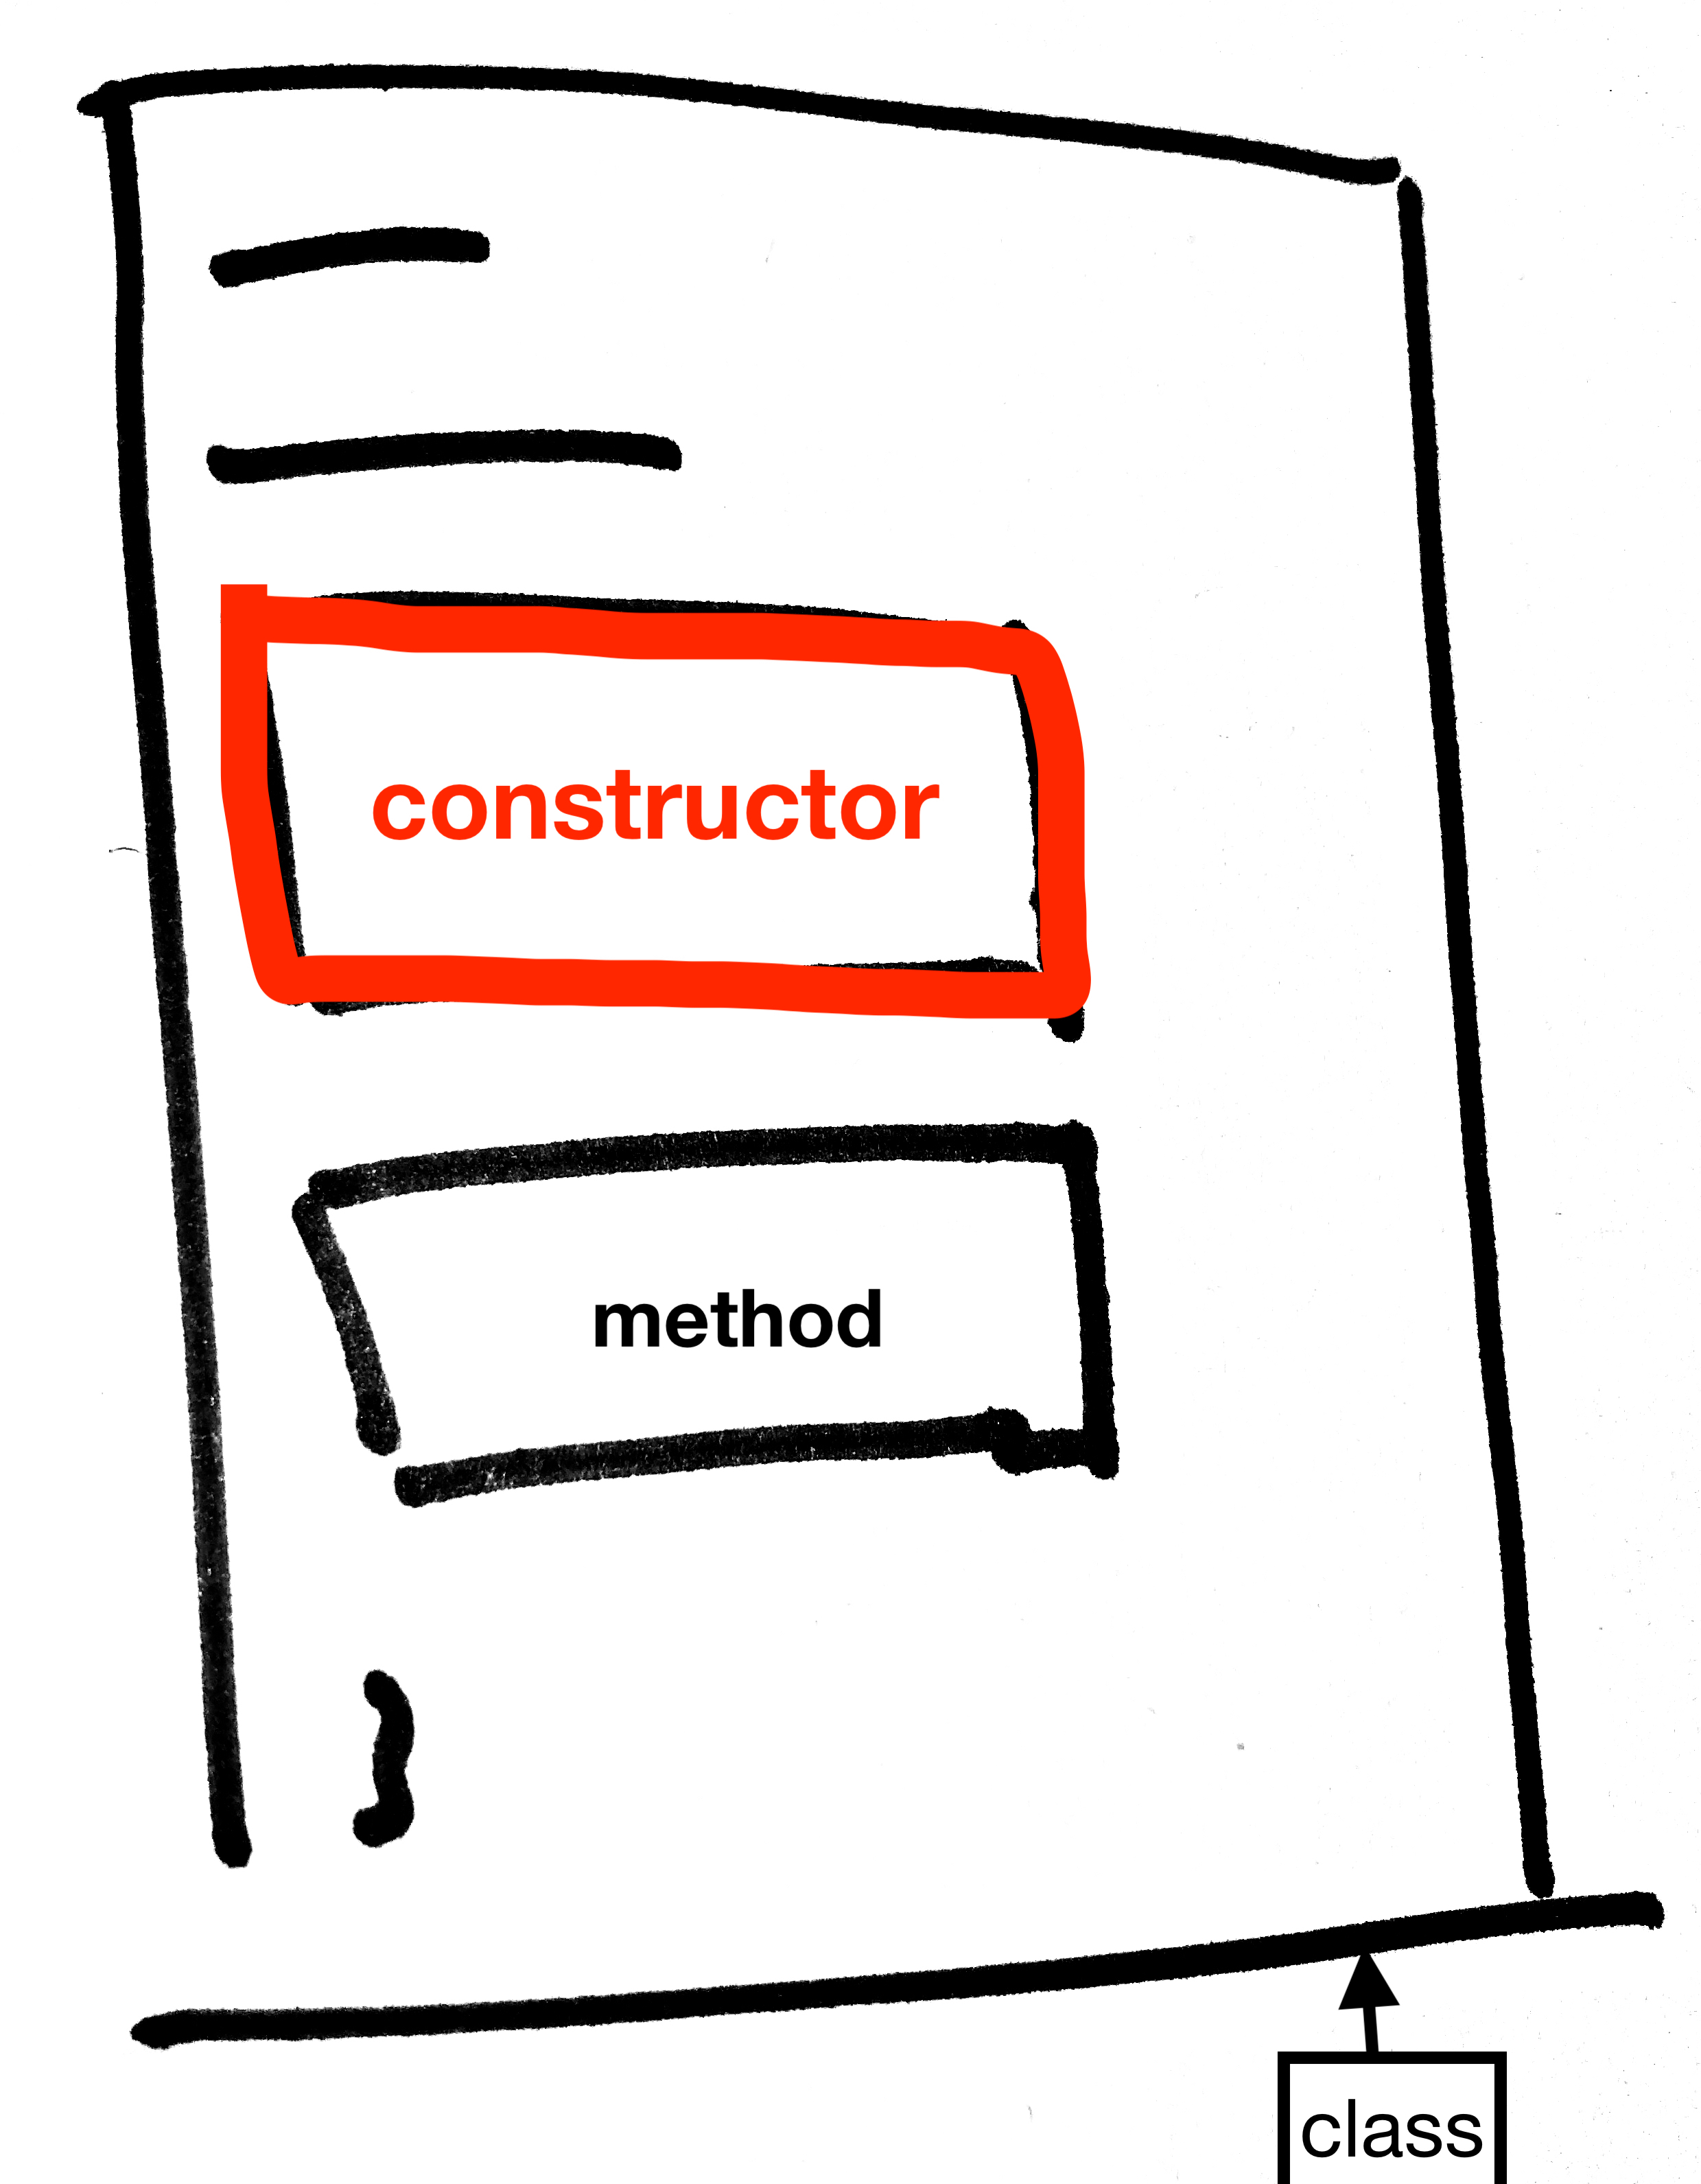 constructor in class java